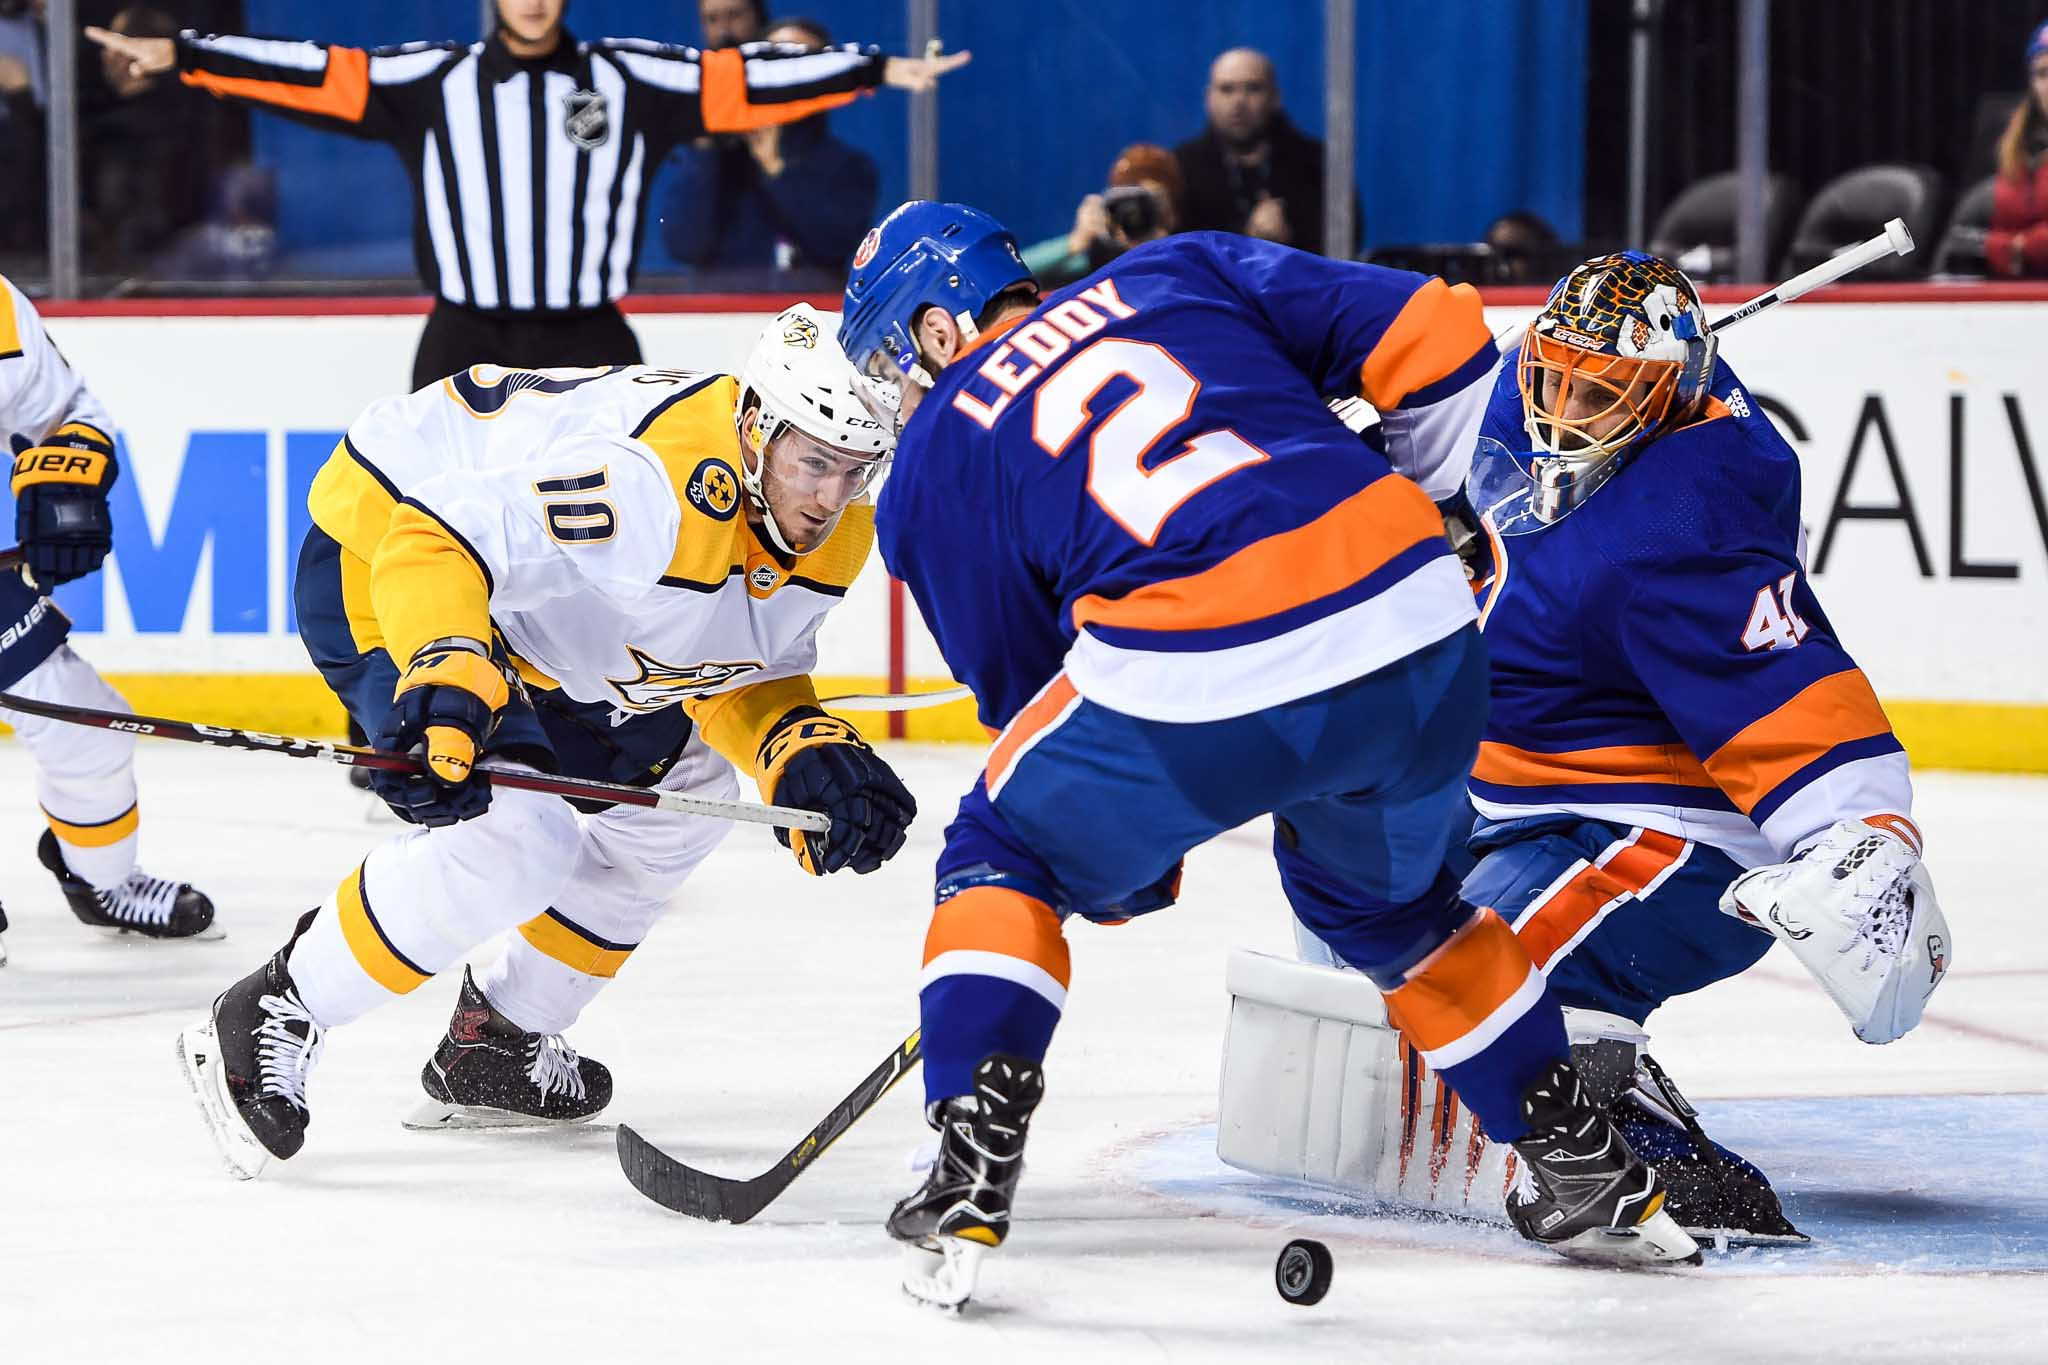 Feb 5, 2018; Brooklyn, NY, USA; New York Islanders goaltender Jaroslav Halak (41) makes a save and Nashville Predators center Colton Sissons (10) and New York Islanders defenseman Nick Leddy (2) fight over the loose puck during the first period at Barclays Center. Mandatory Credit: Dennis Schneidler-USA TODAY Sports